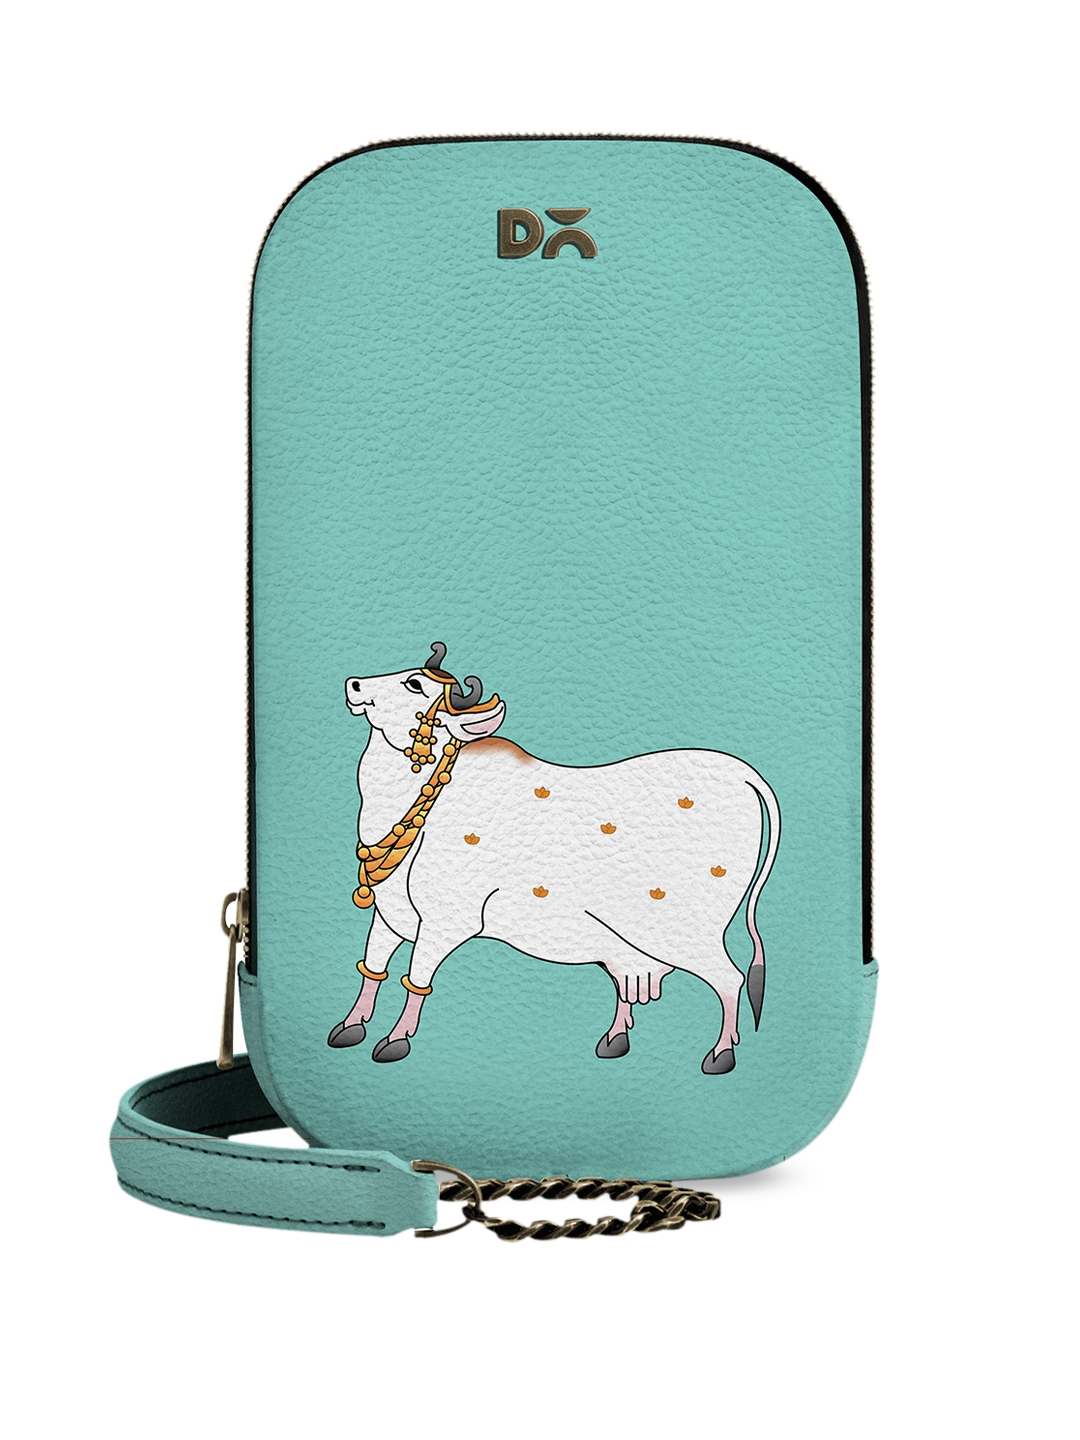 DailyObjects Turquoise Blue   White Dreamy Cow Printed Sling Bag